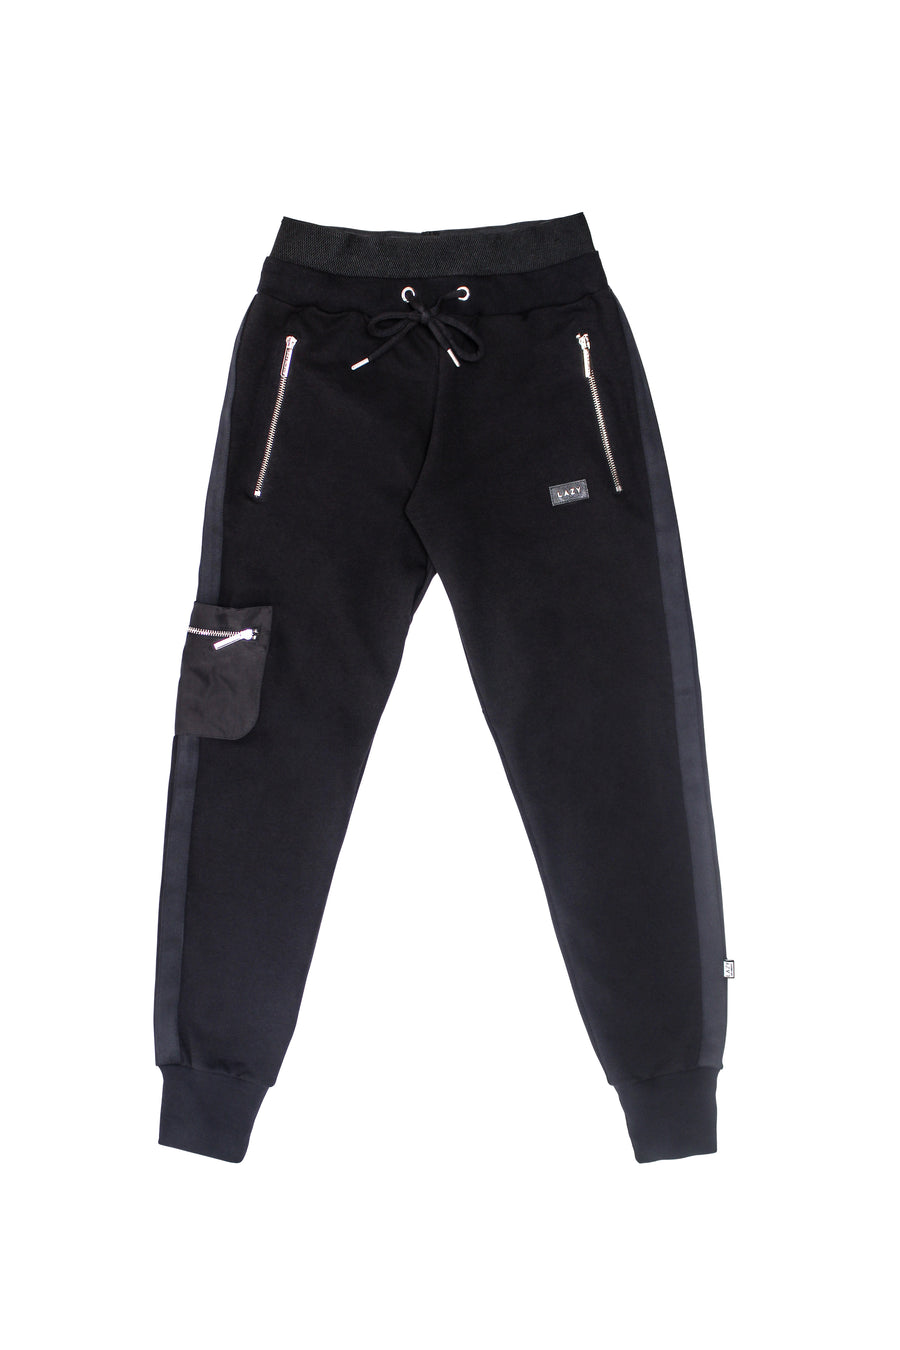 LAZY 2.0 Sweat Pants Black-Bottoms-Christina Dienst